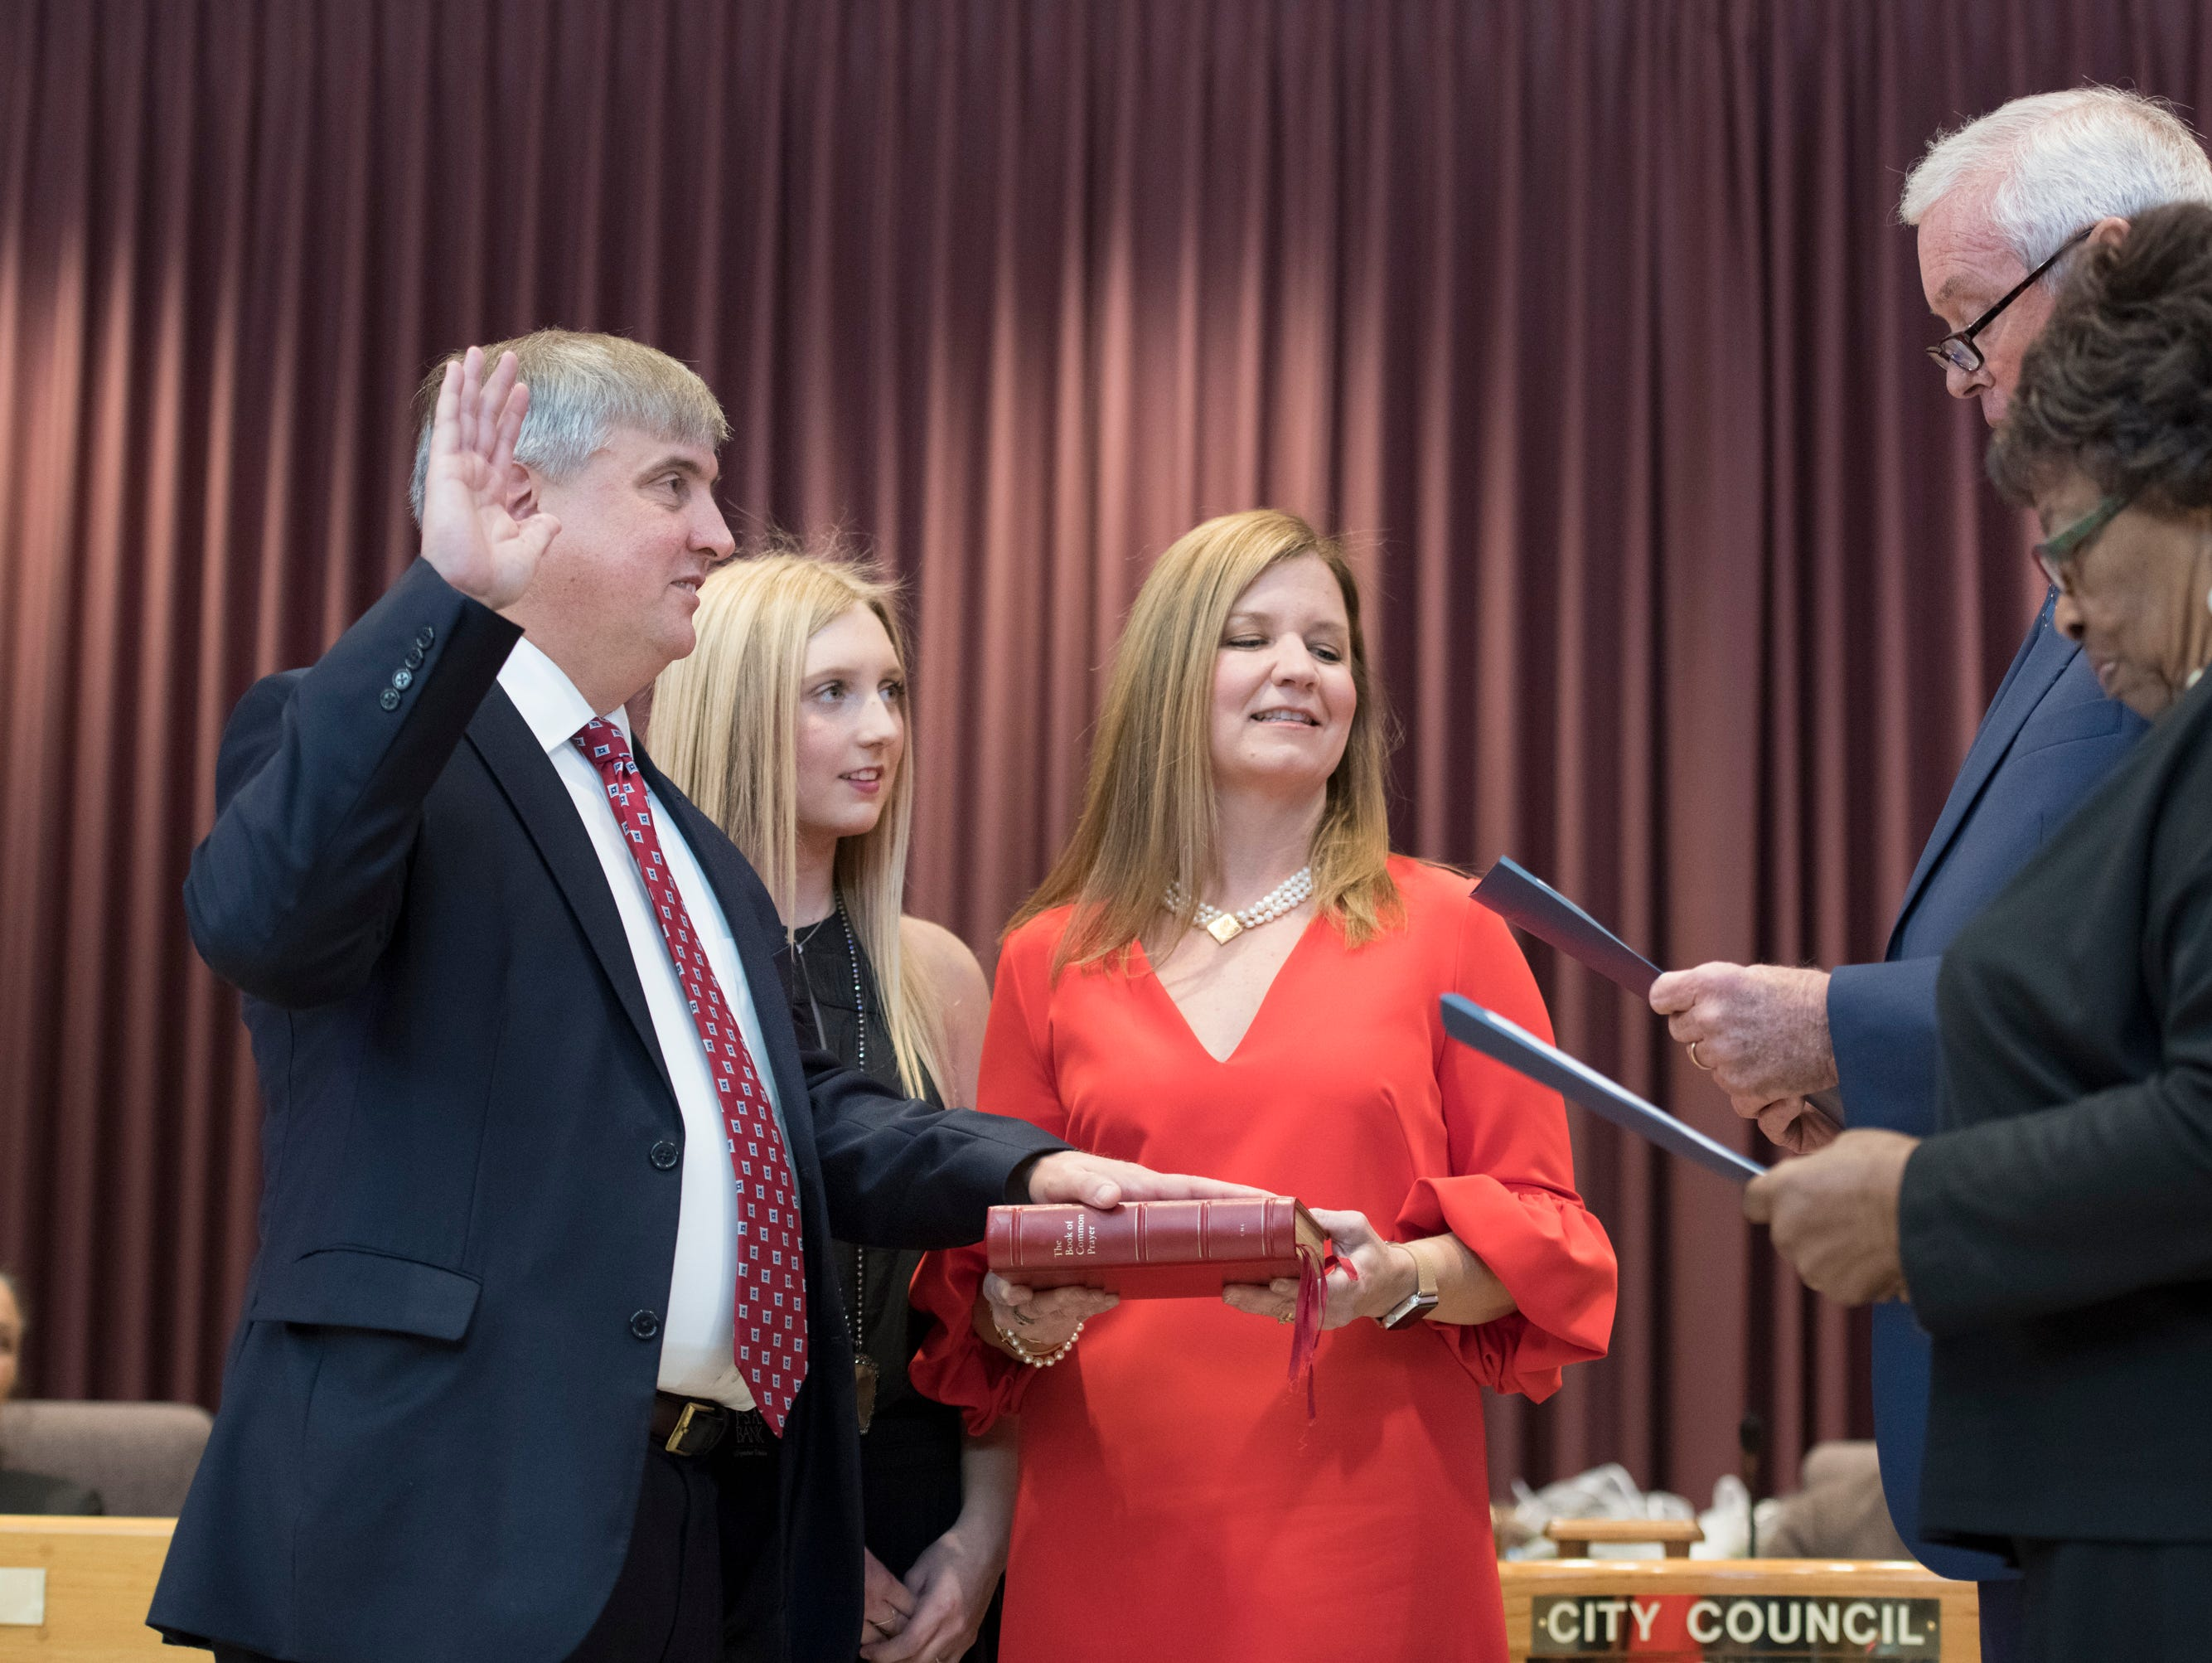 Mayor Grover Robinson is sworn in during the installation ceremony at City Hall in Pensacola on Tuesday, November 27, 2018.